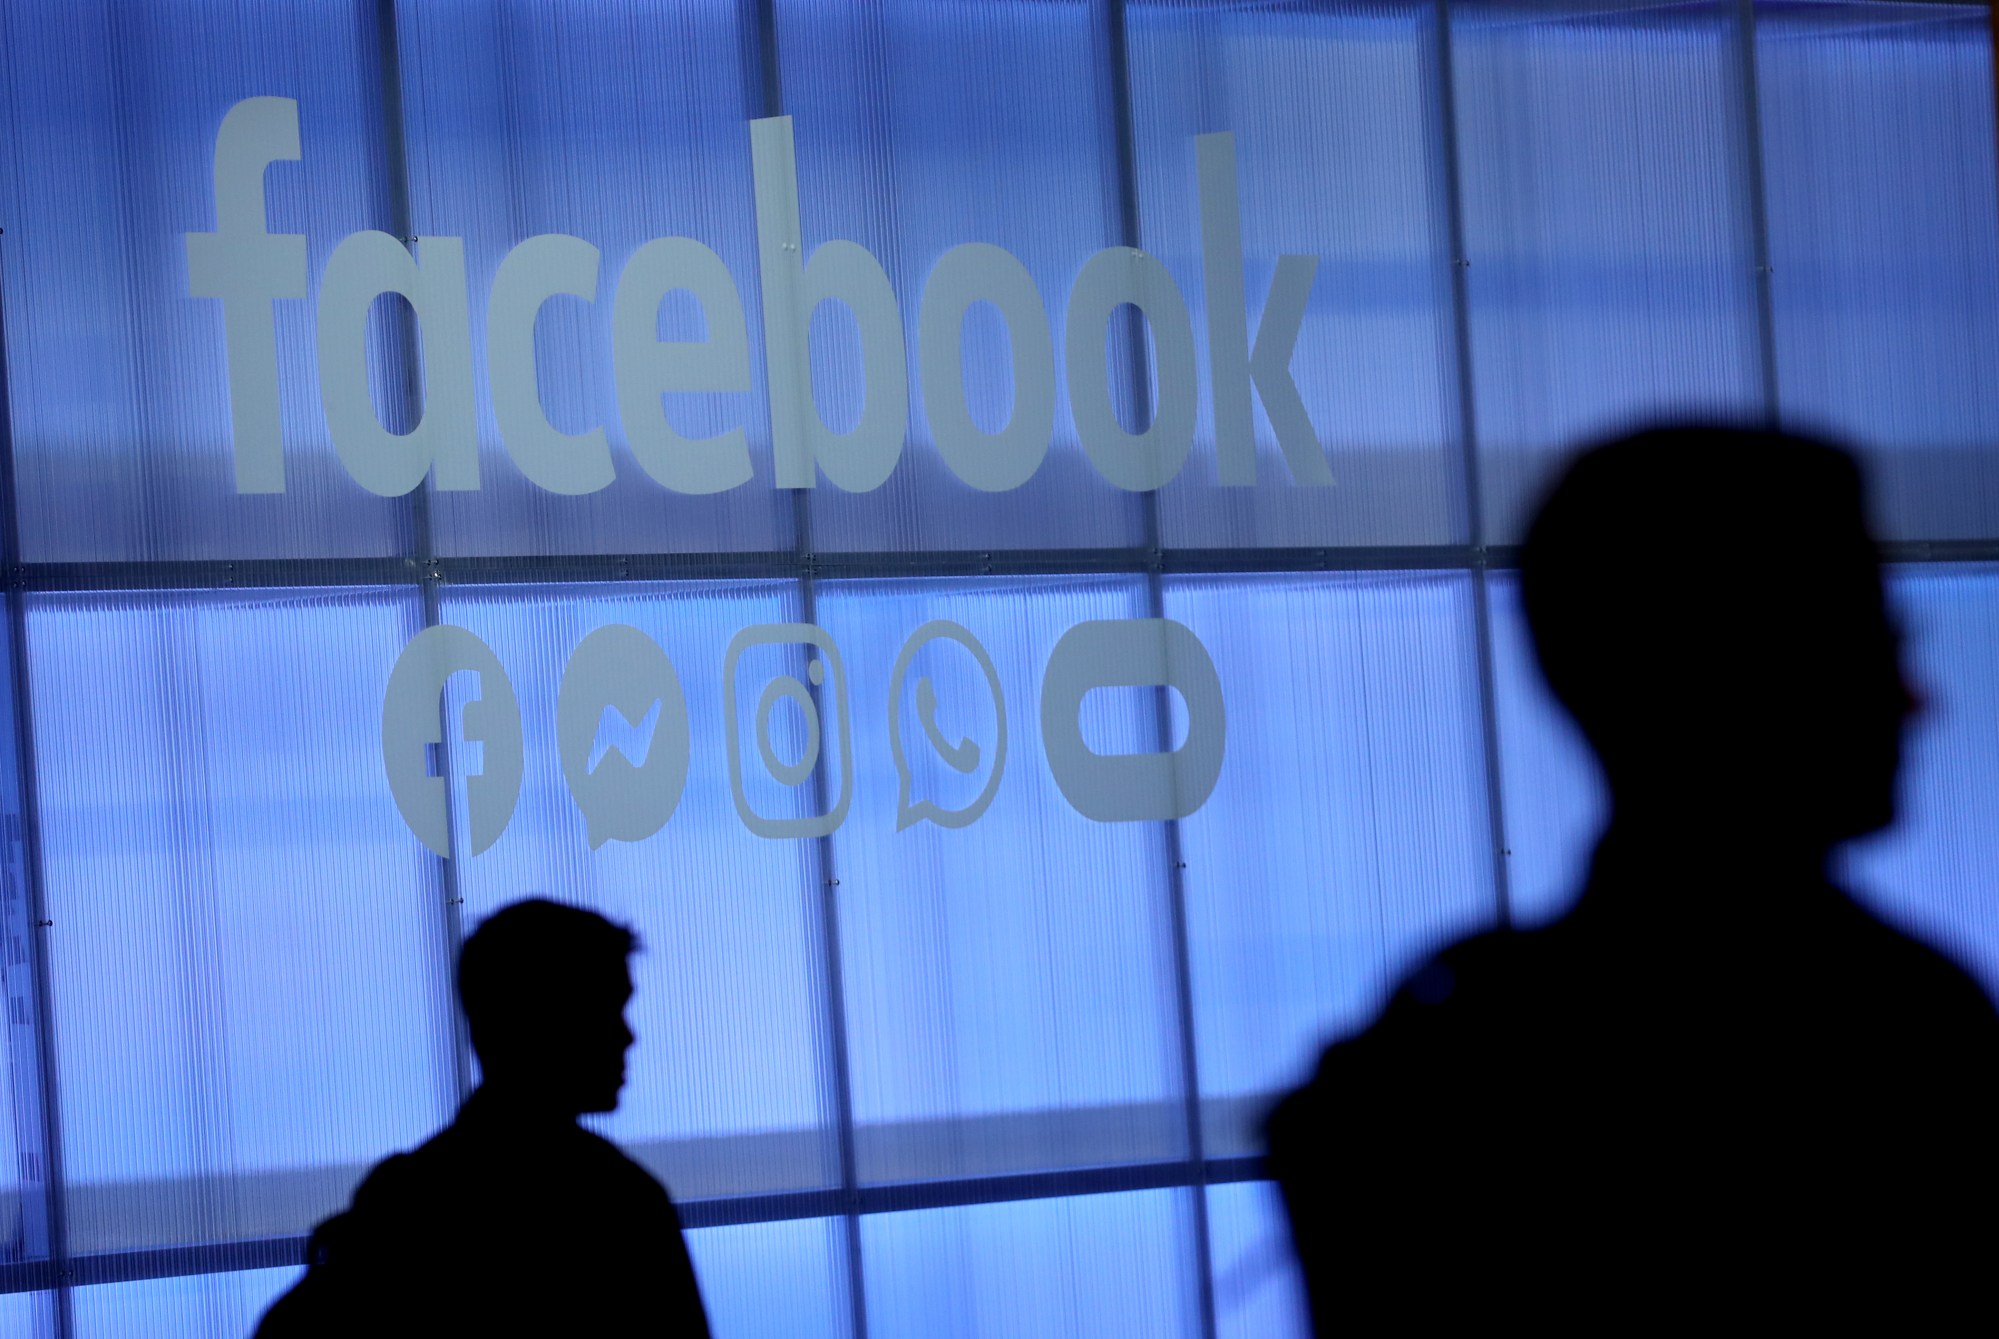 The Facebook logo is displayed during the F8 Facebook Developers conference on April 30, 2019 in San Jose. (Credit:Justin Sullivan/Getty Images)